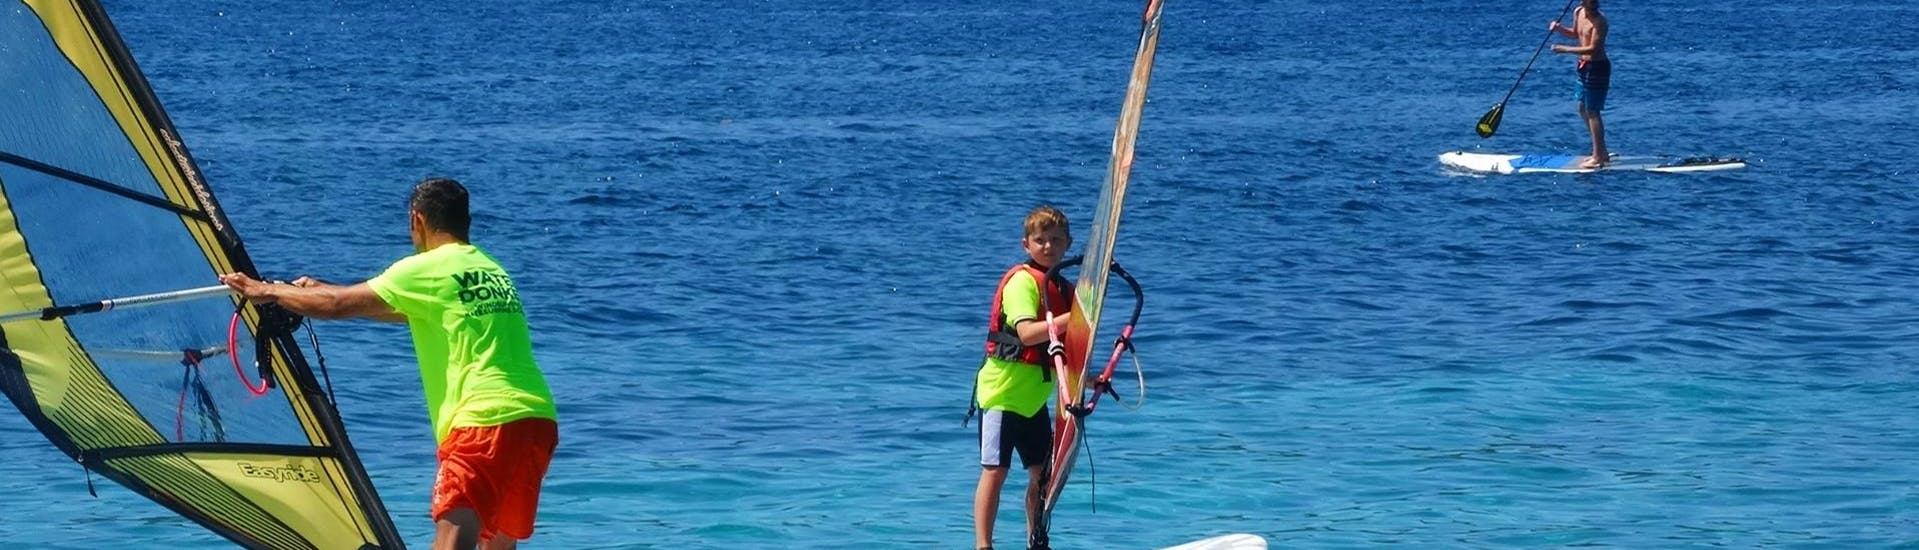 Windsurfing Lesson for Kids (6-12 years)